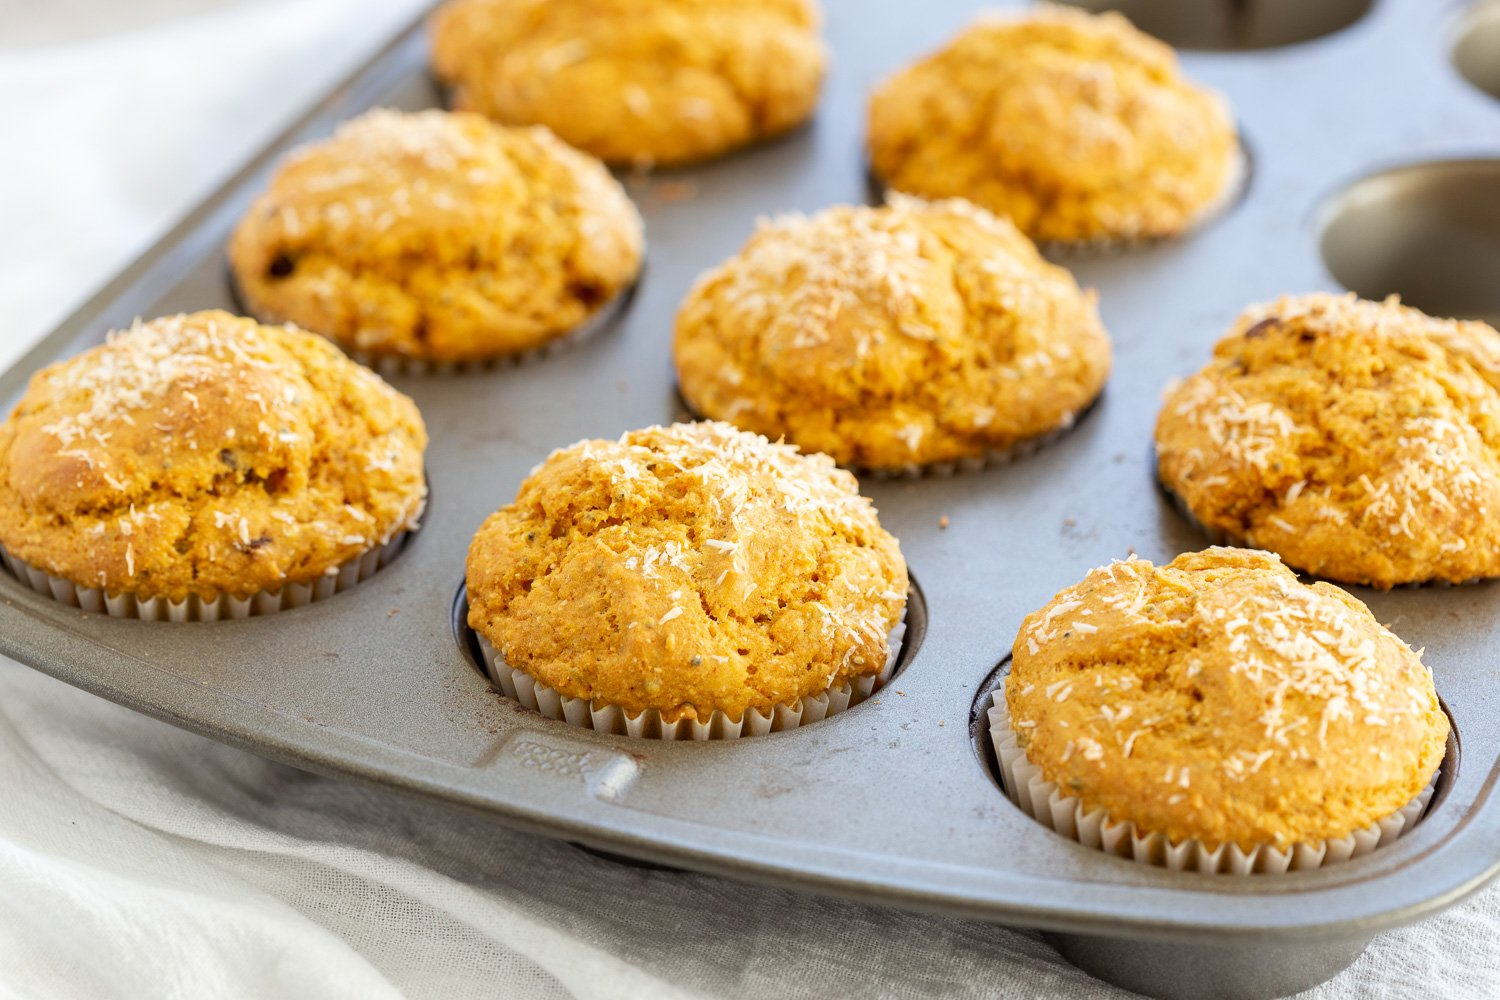 Our Vegan Turmeric Carrot Muffins in a muffin pan